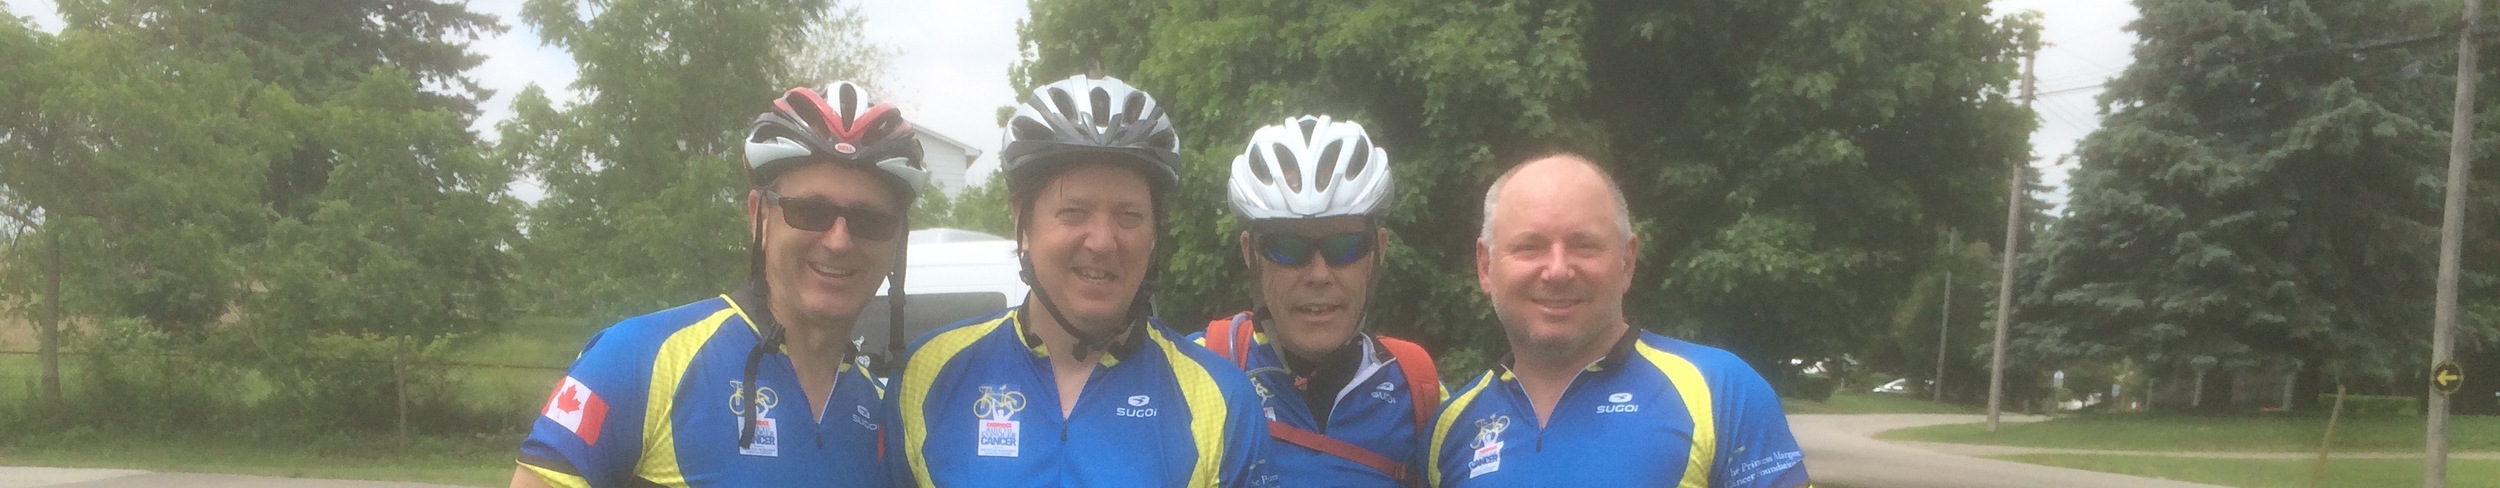 The 2015 Ride to Conquer Cancer